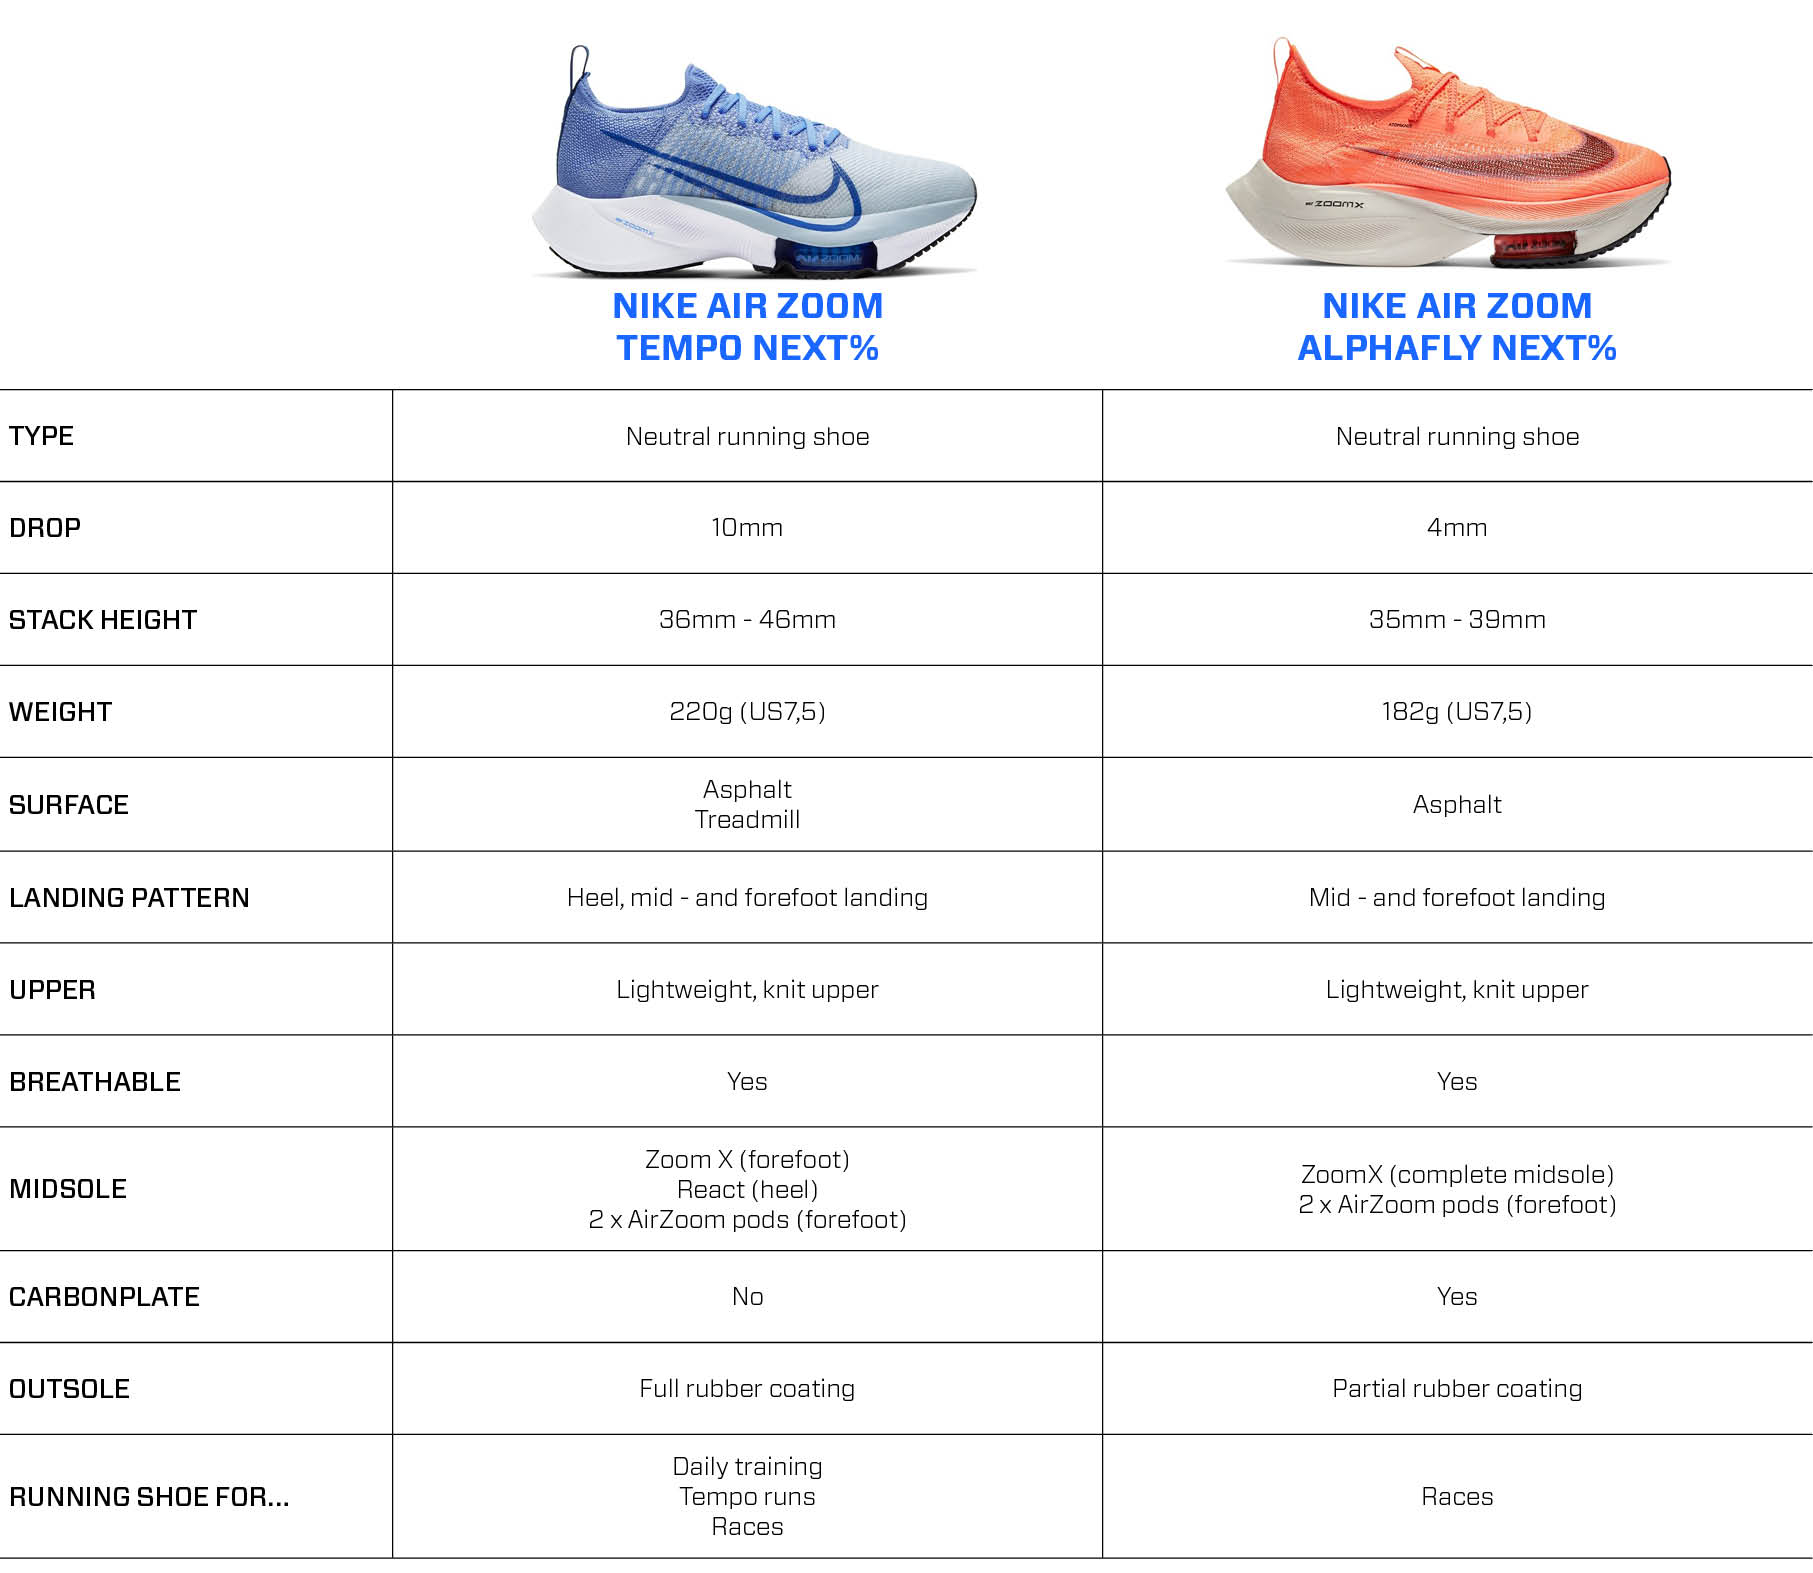 Nike Air Zoom Tempo Next% vs. Nike Air Zoom Alphafly Next%